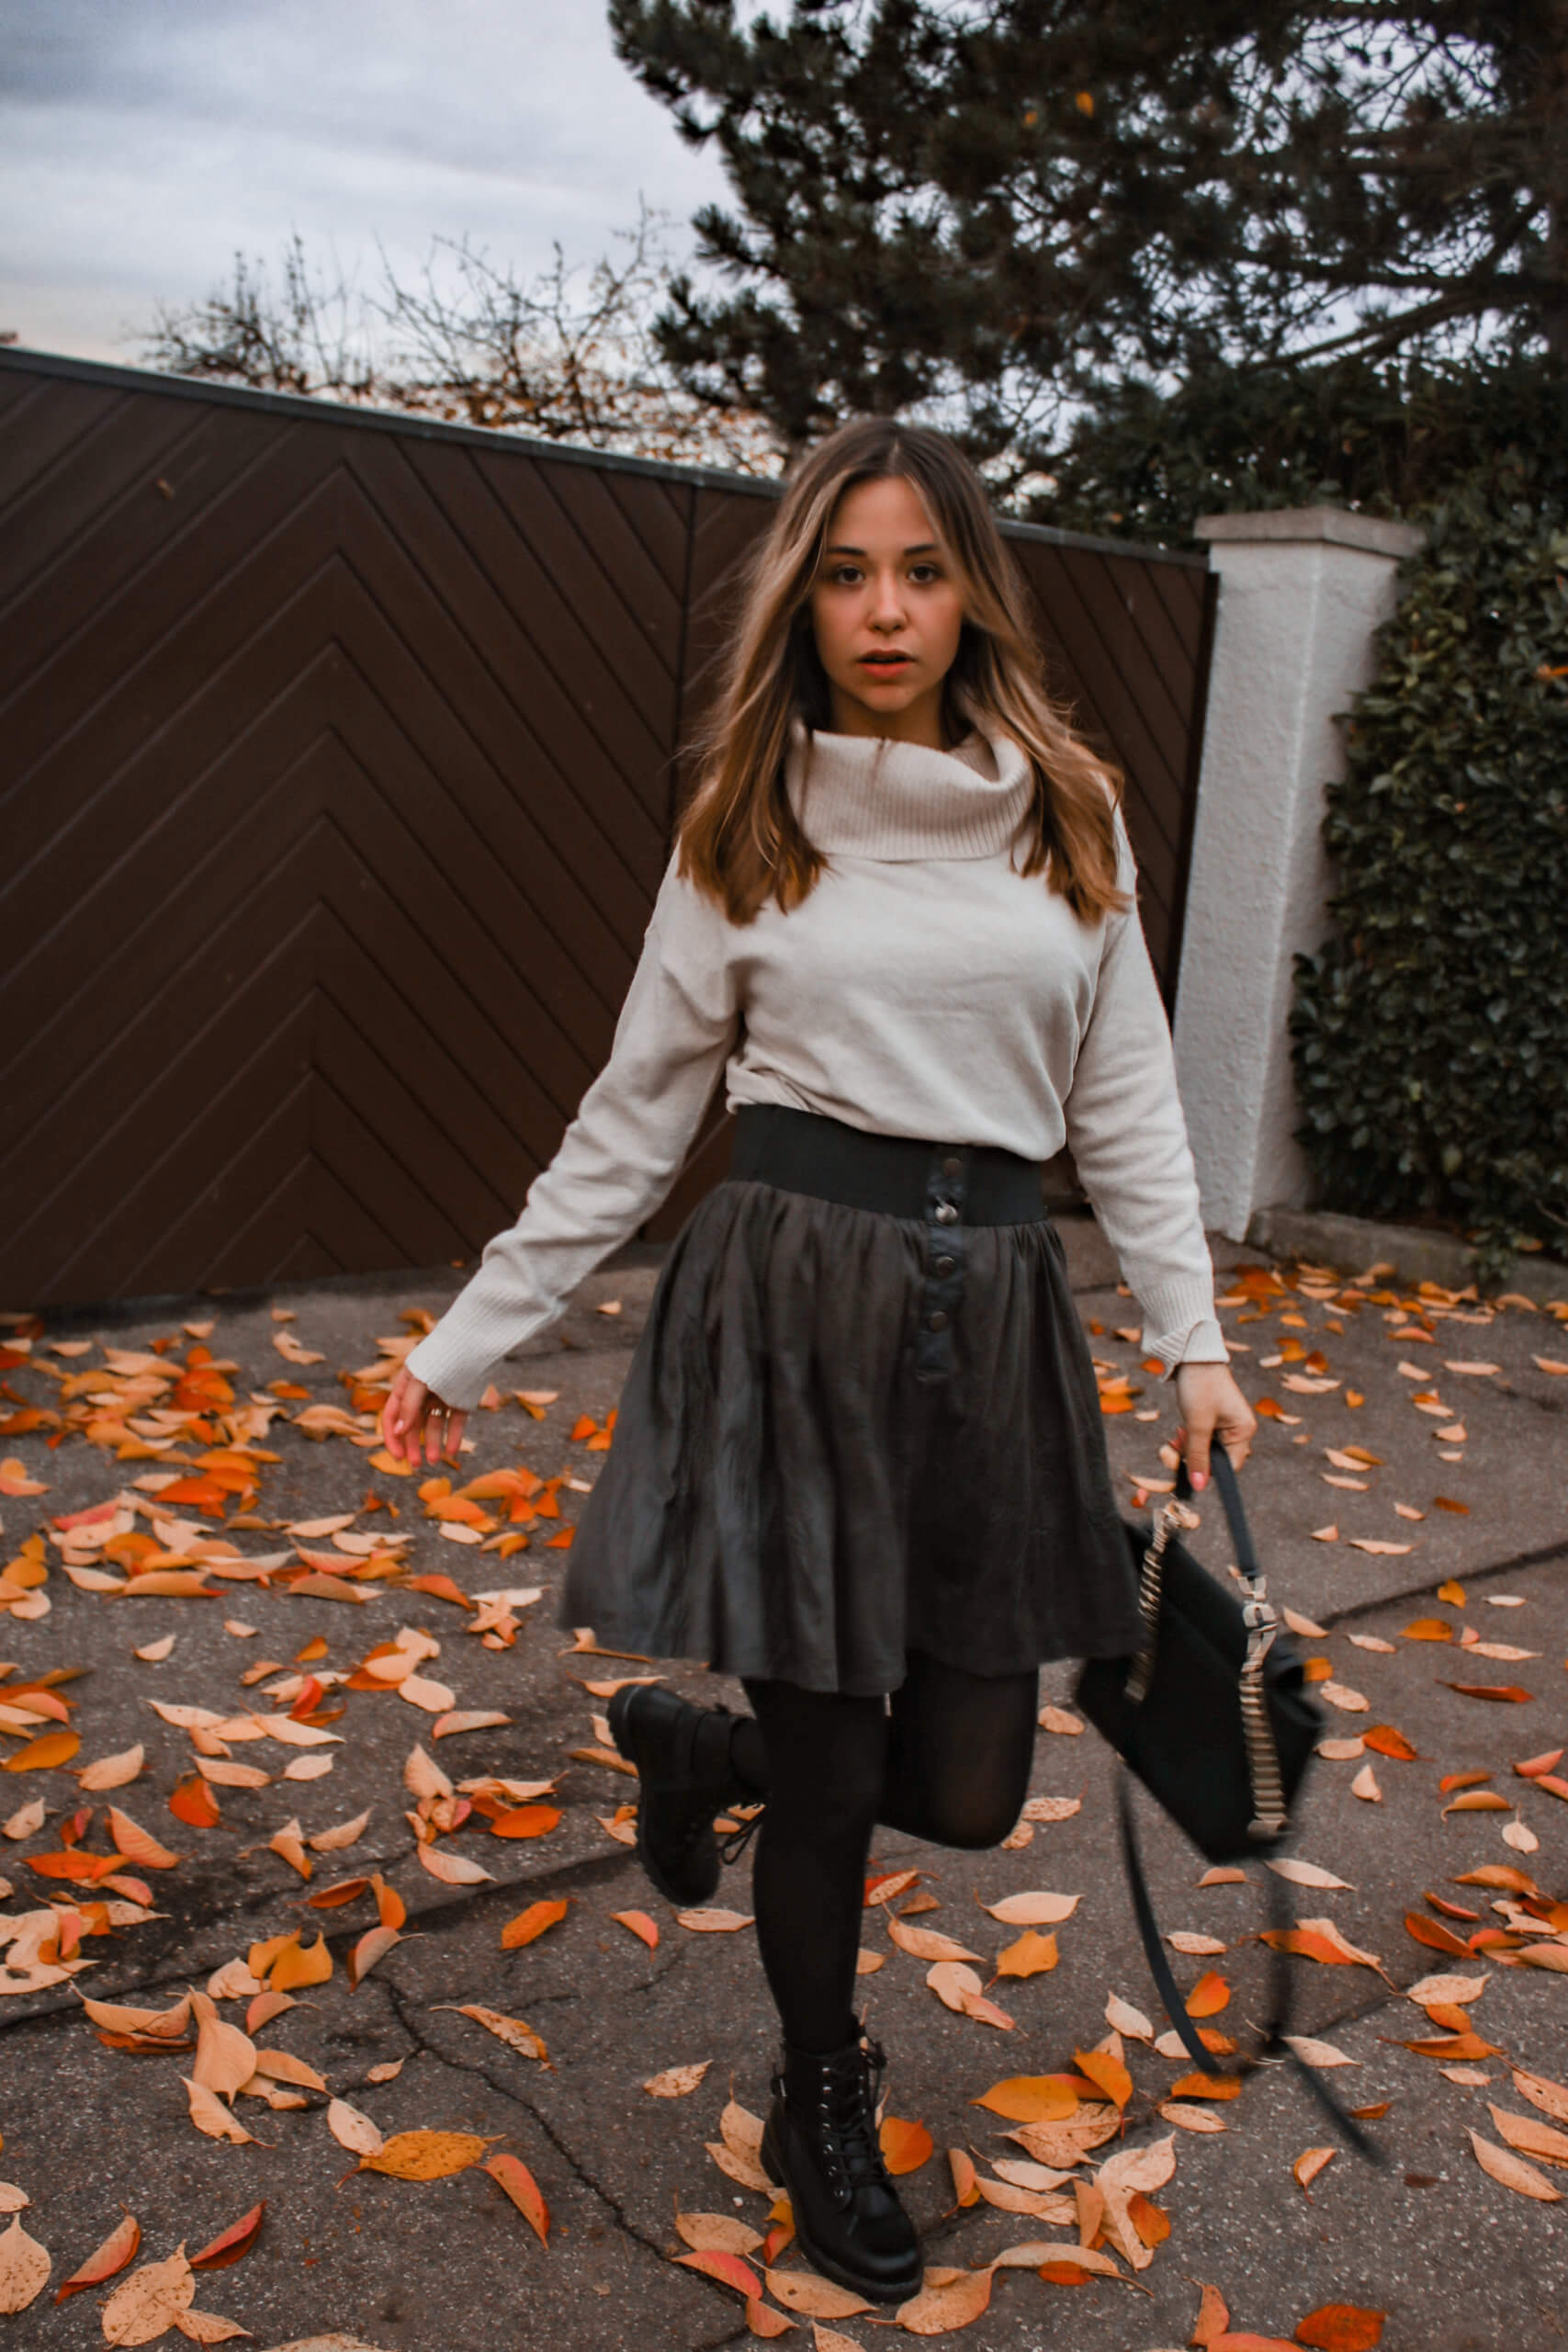 Strumpfhose rock outfit mit und Herbst Outfits